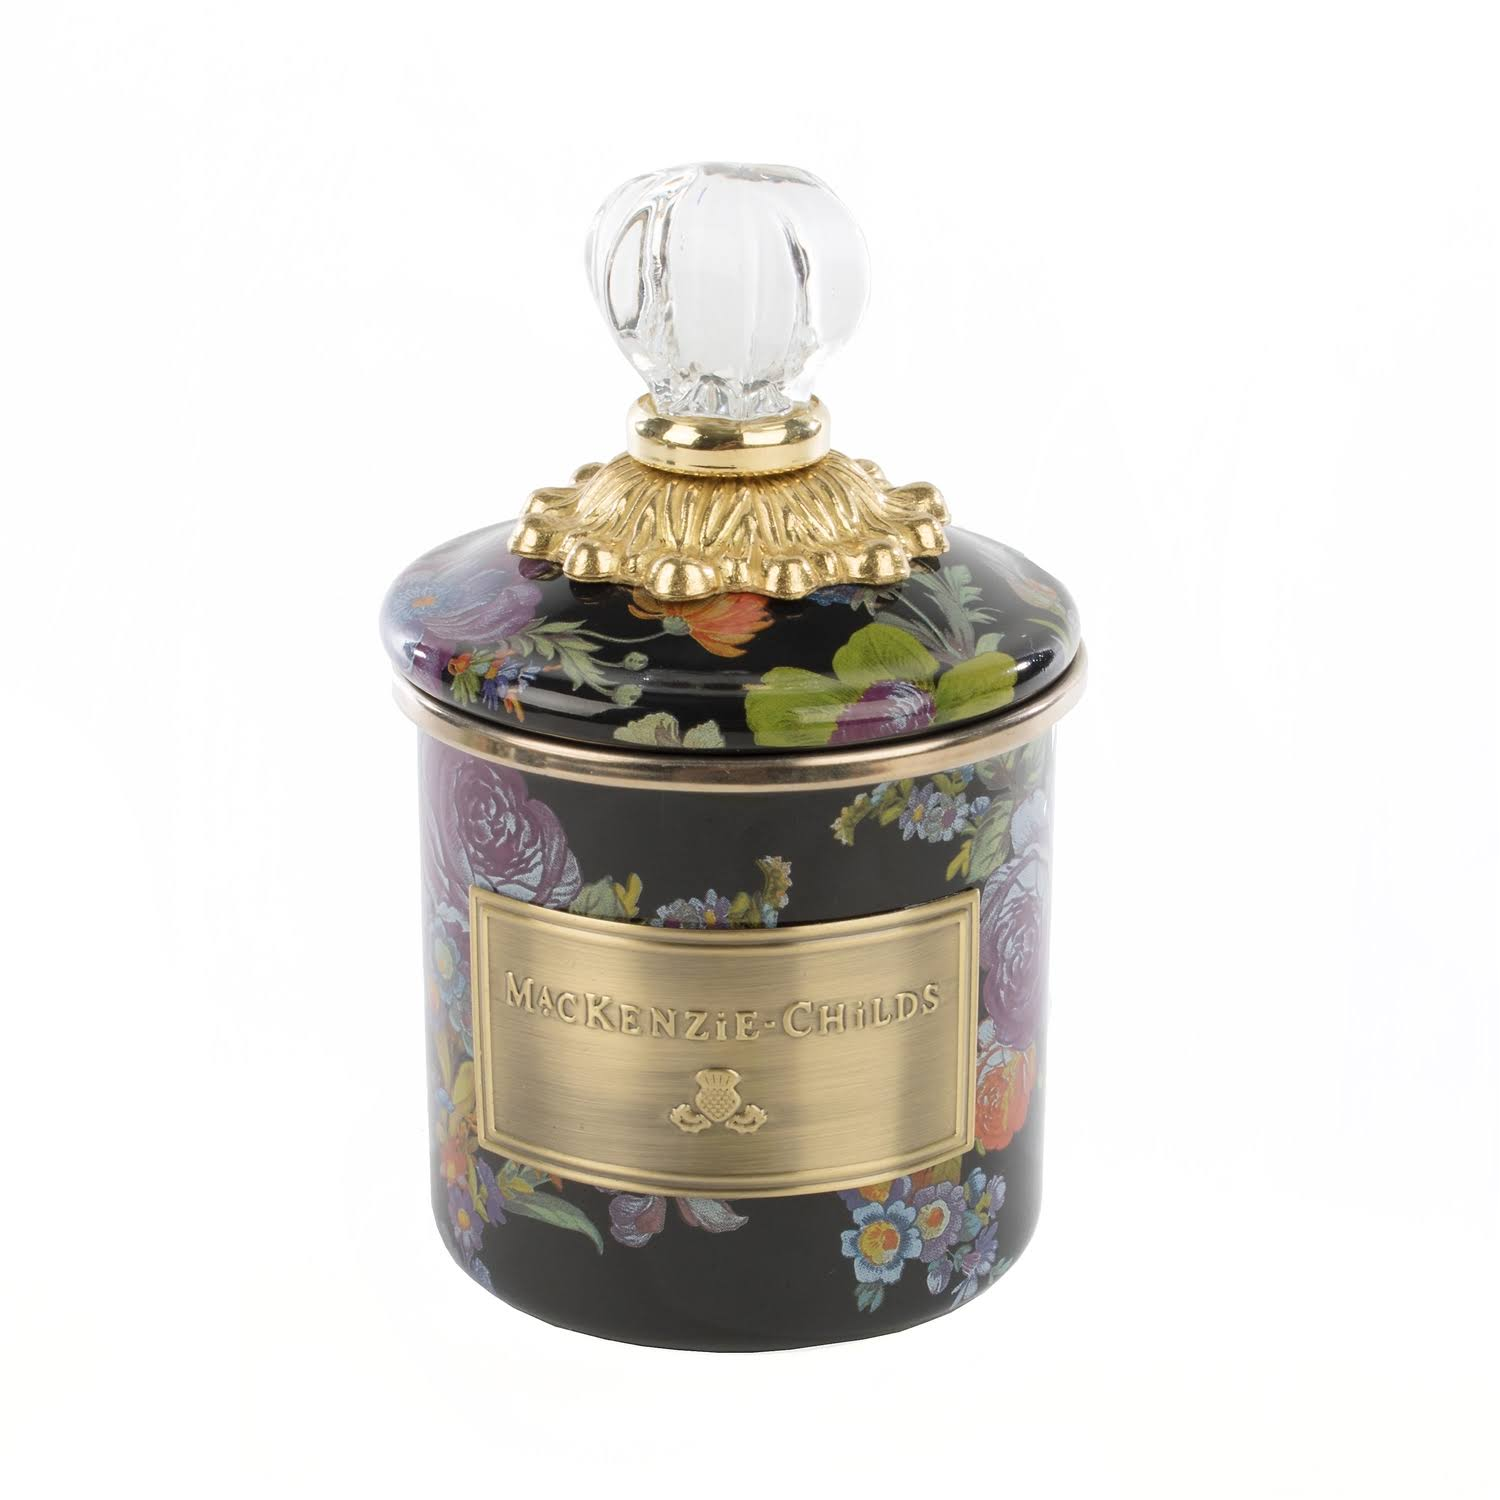 MacKenzie-Childs Flower Market Black Mini Canister